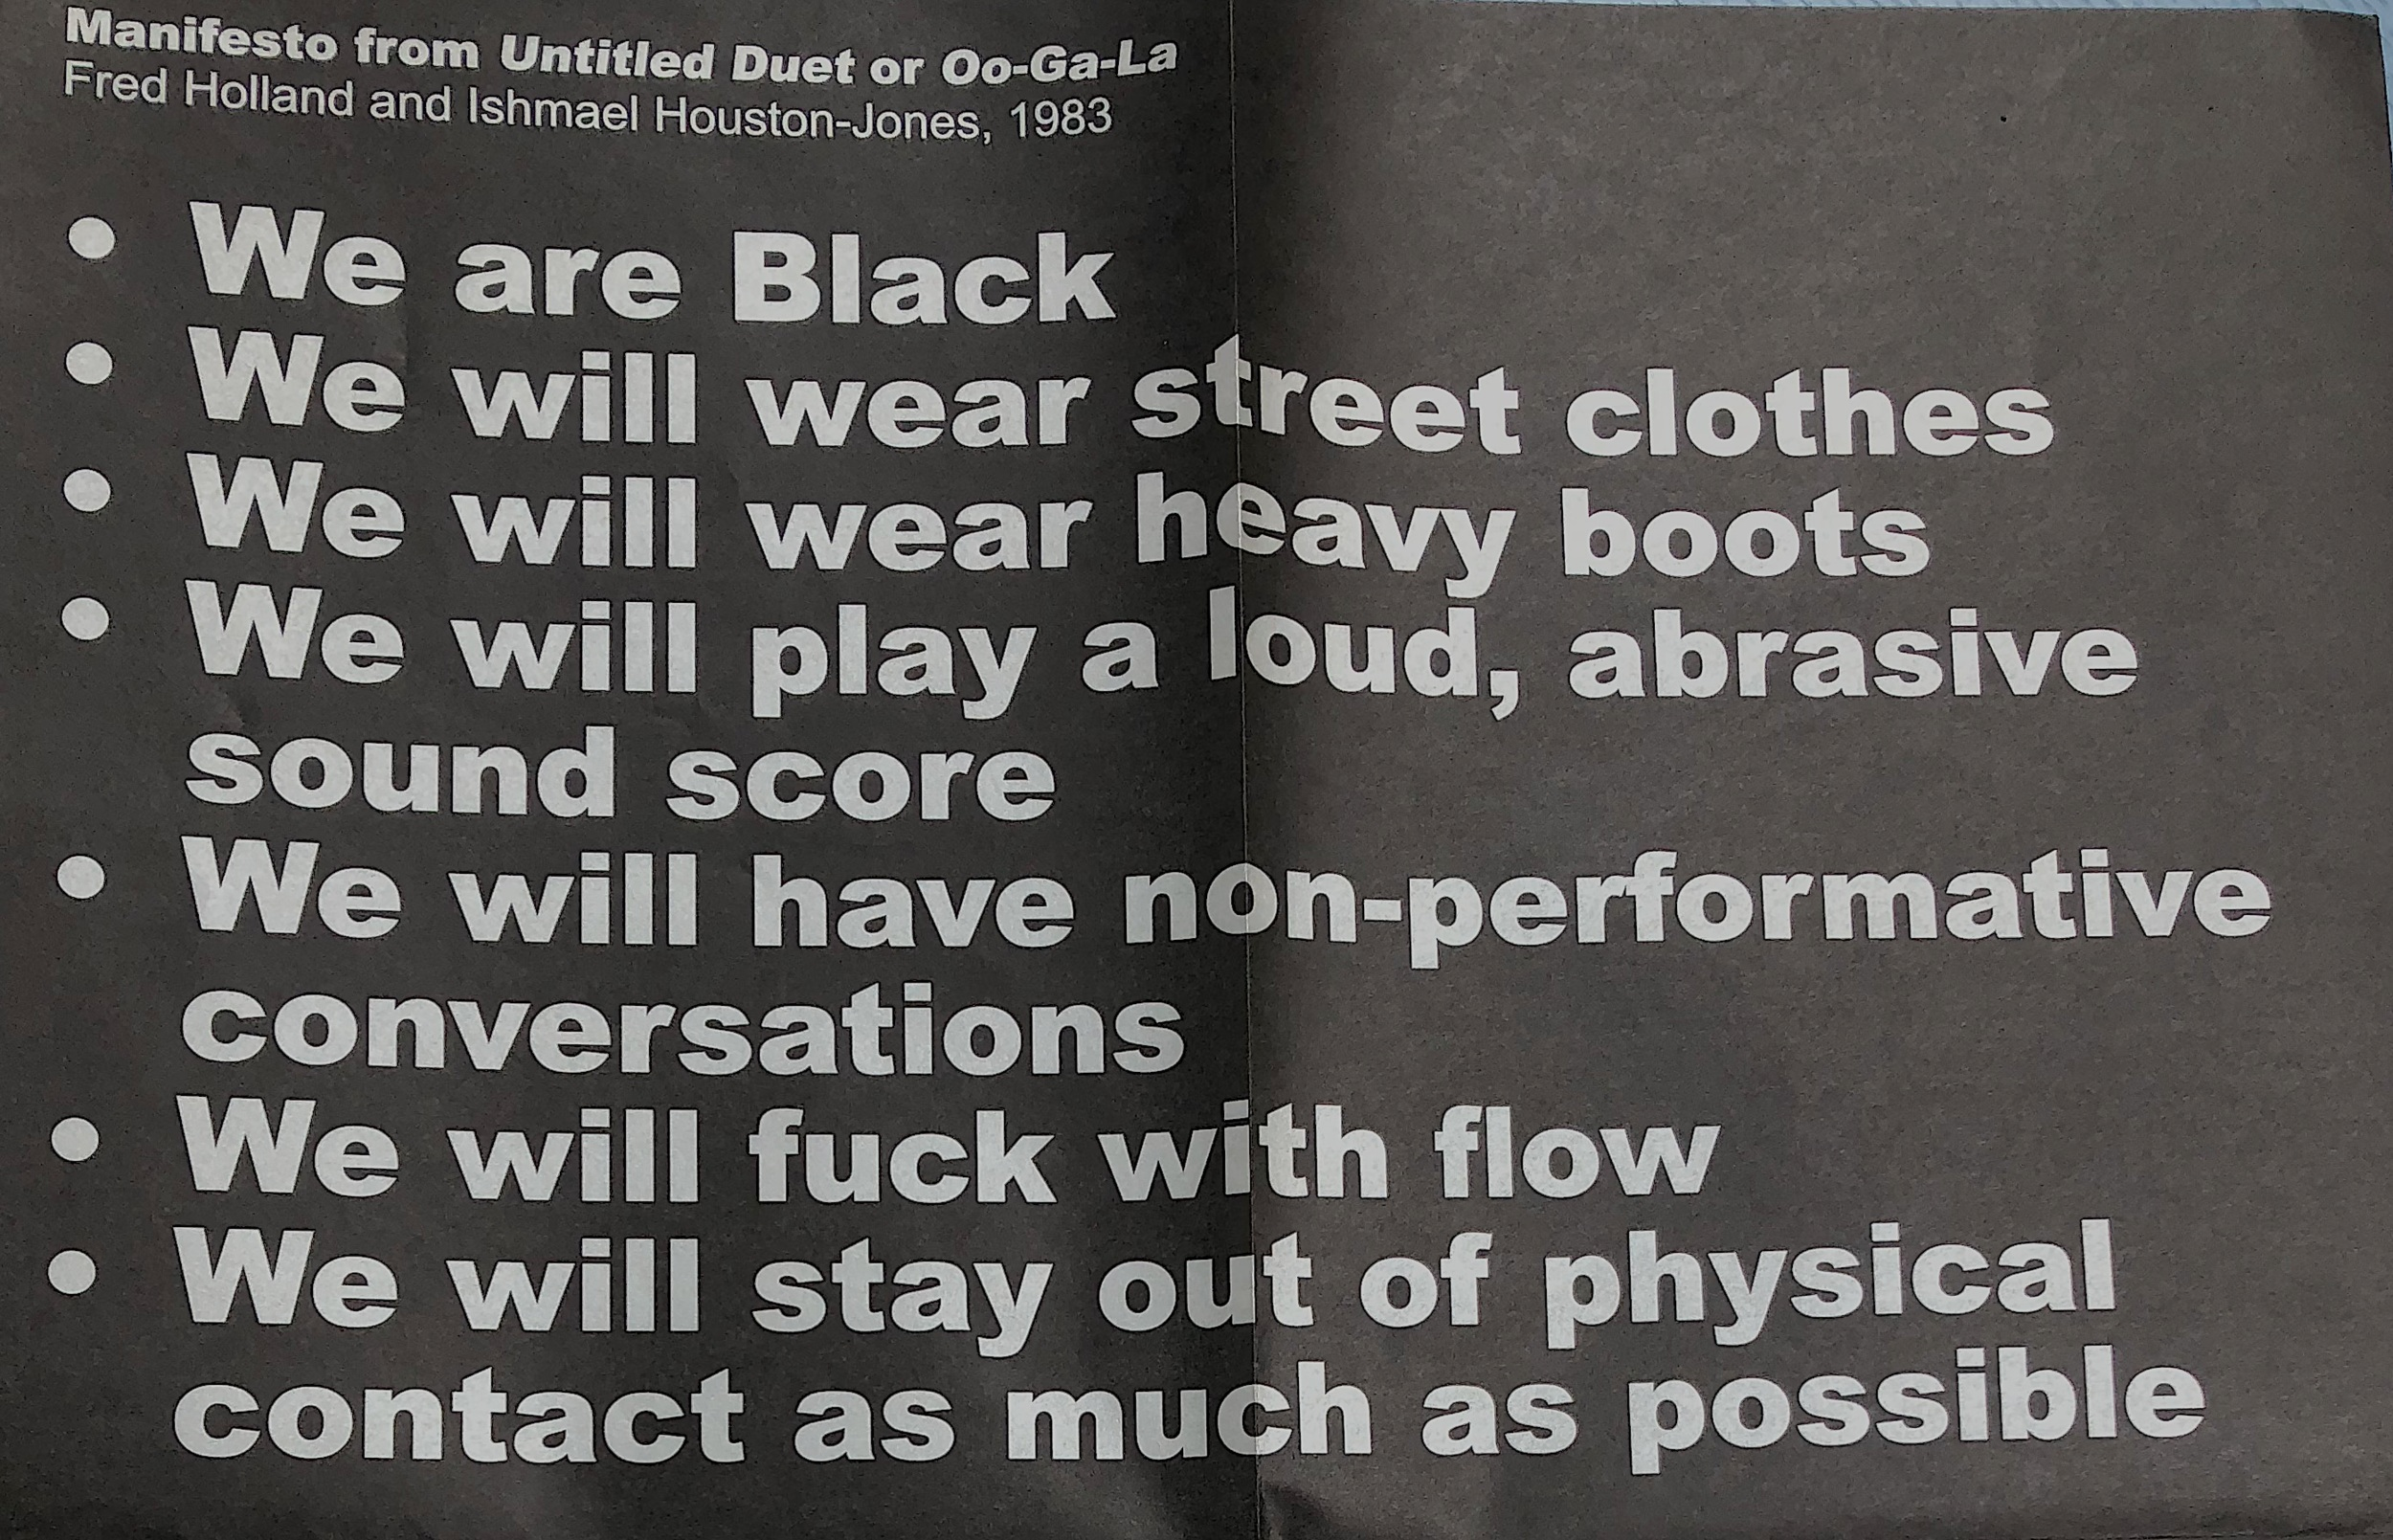 This manifesto for Fred Holland and Ishmael Houston-Jones's 1983  Untitled Duet  at Contact at 10th and 2nd was not disclosed to the audience.  The Institute for Contemporary Art, Philadelphia printed this poster as part of the installation, Endless Shout, 2017